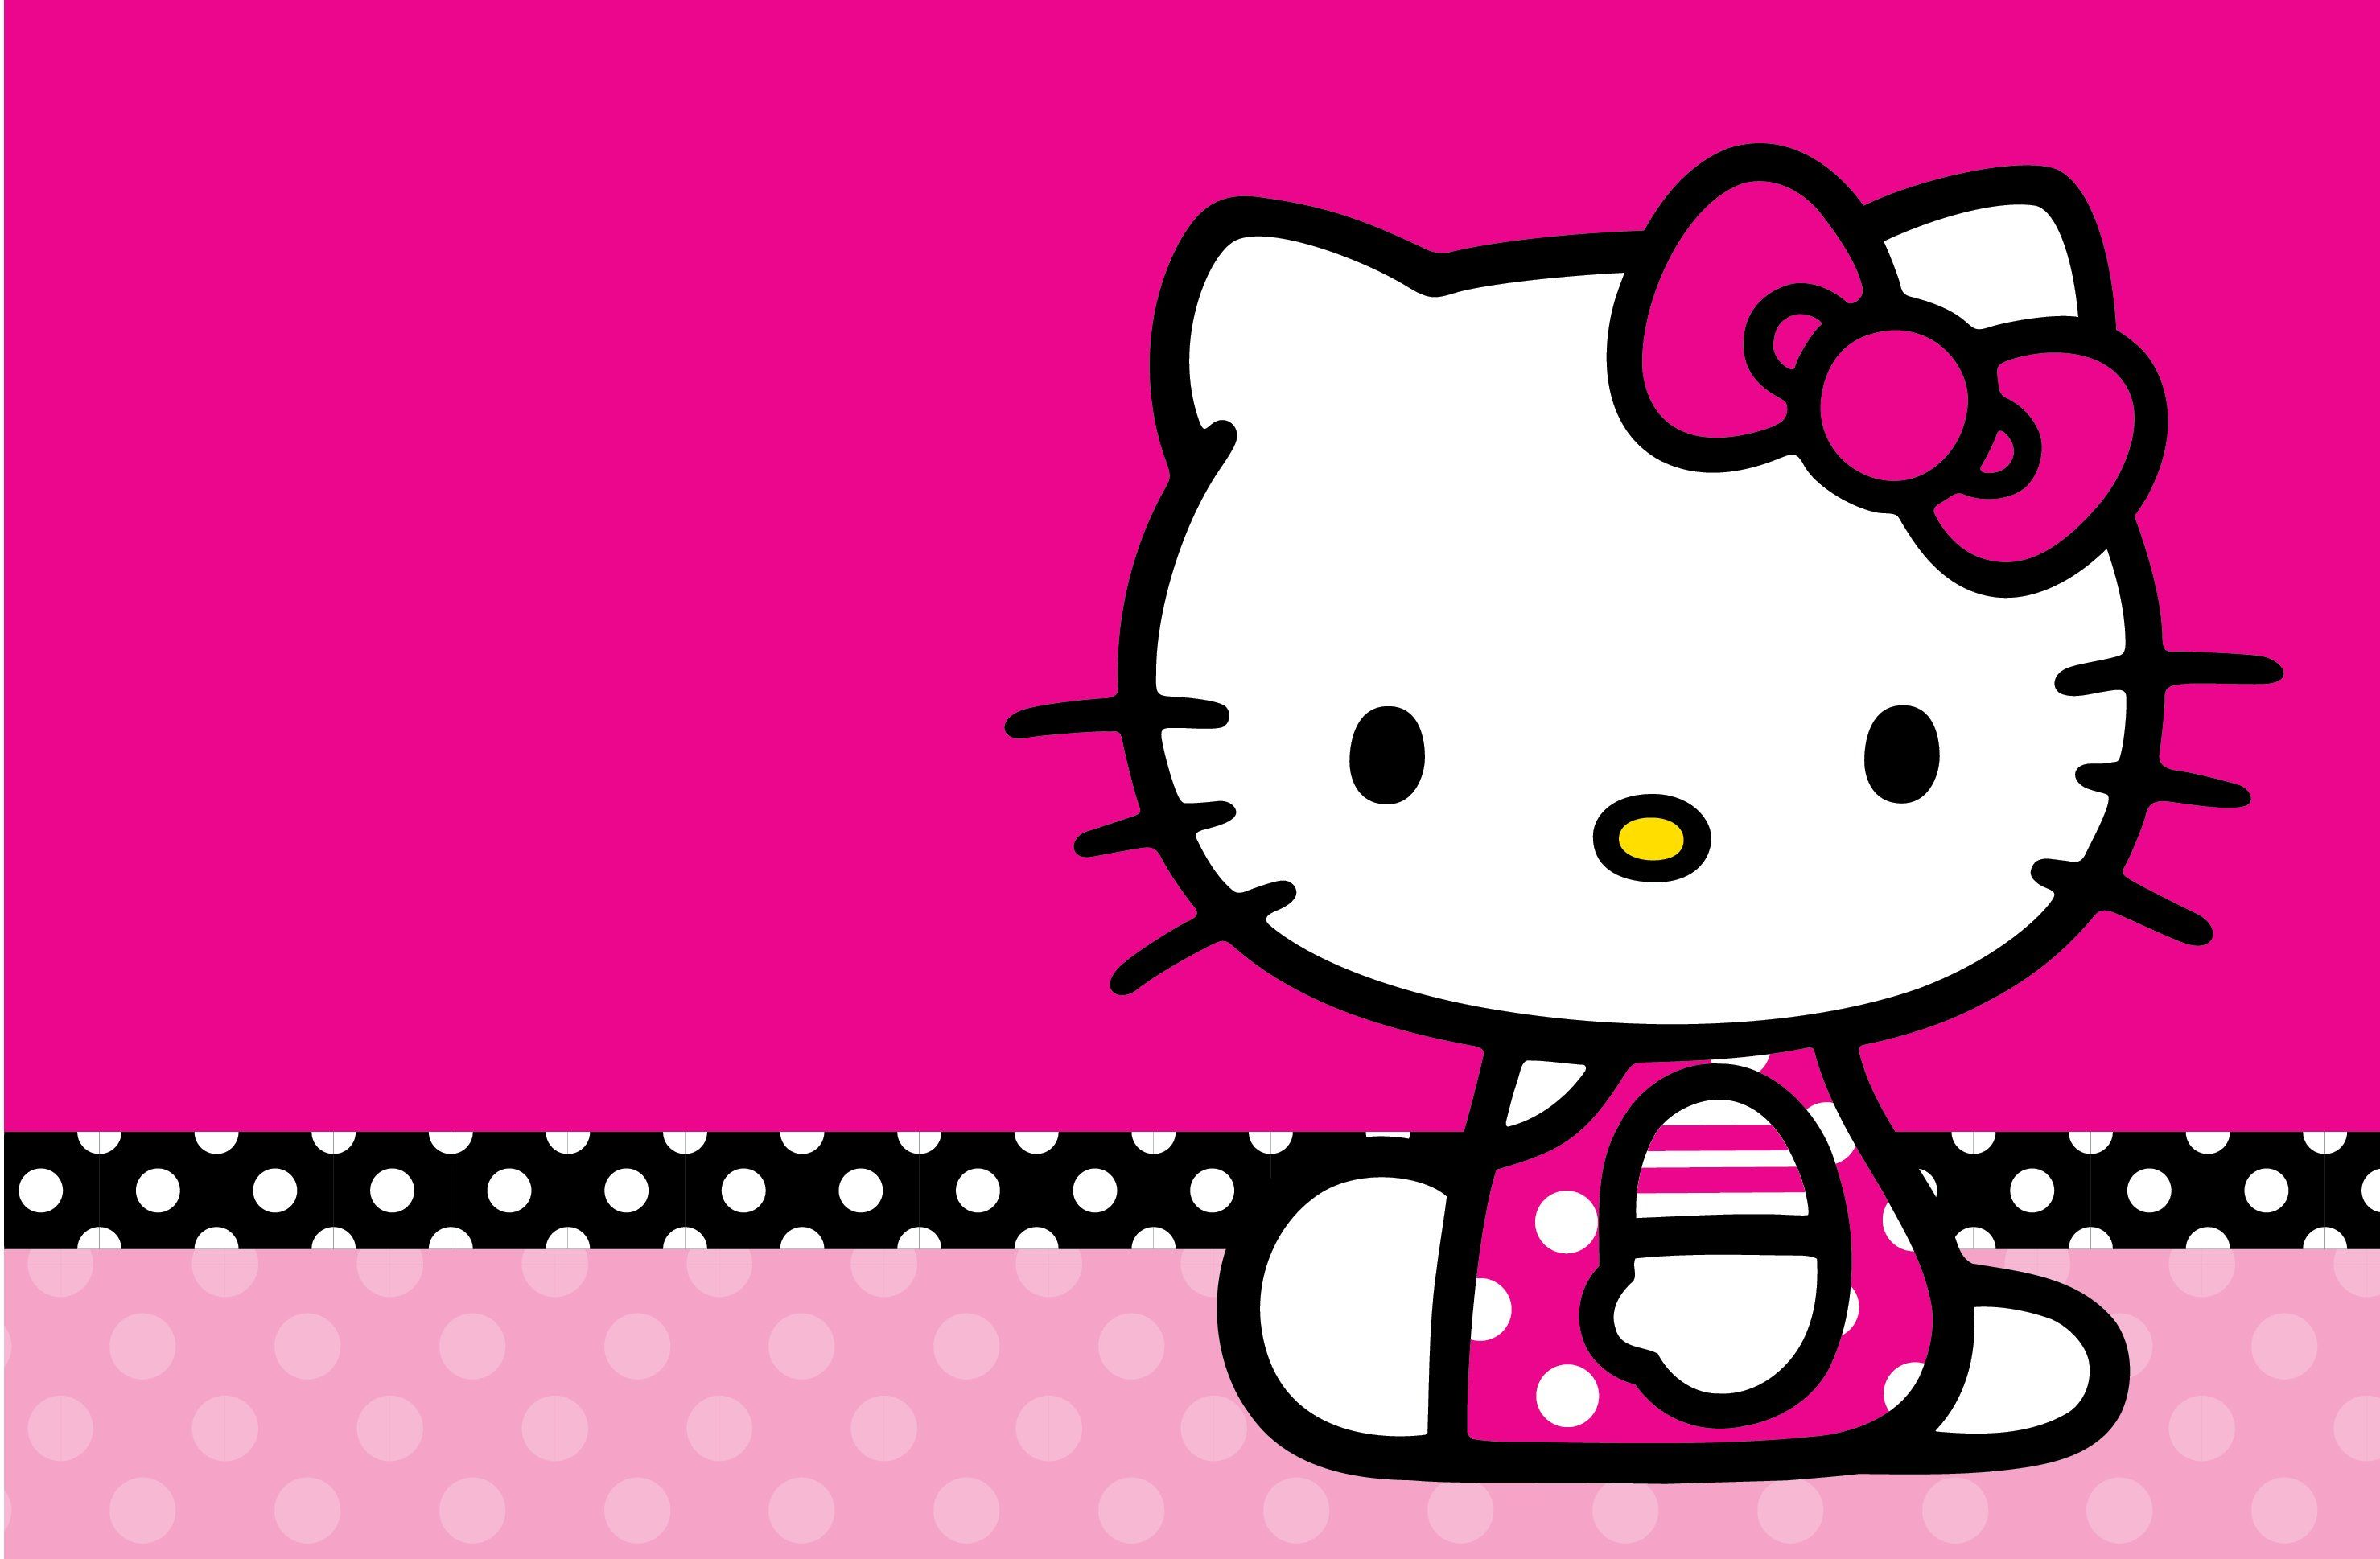 Kitty Wallpapers   Top Kitty Backgrounds   WallpaperAccess 2958x1938